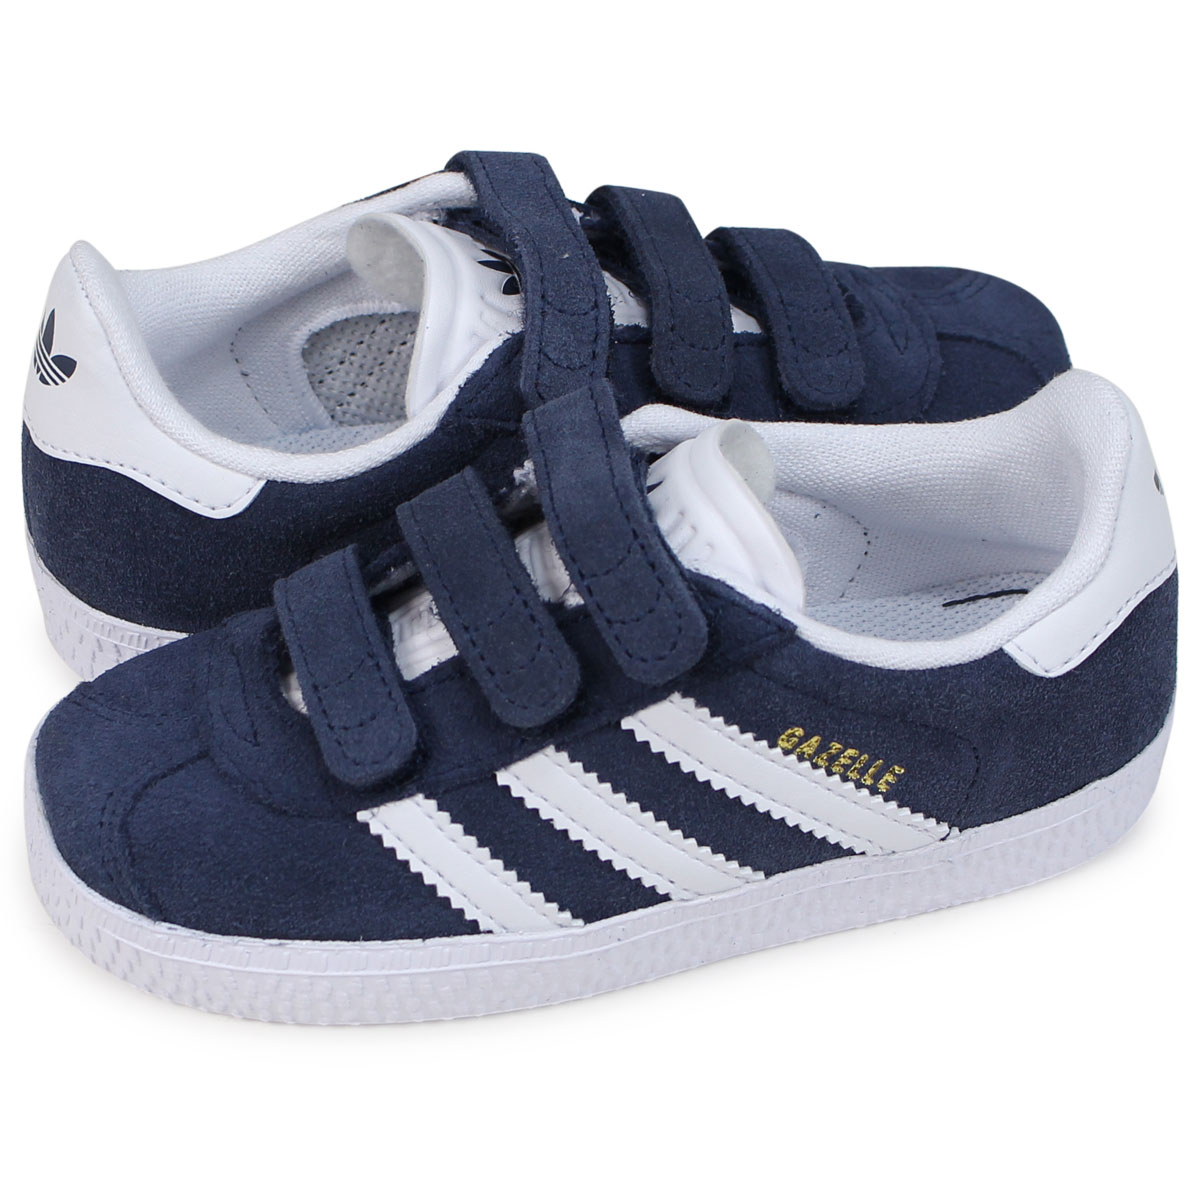 promo code 1cc10 d71dc adidas Originals GAZELLE CF I Adidas originals gazelle sneakers baby gut  label black navy CQ3138  1 25 Shinnyu load   191